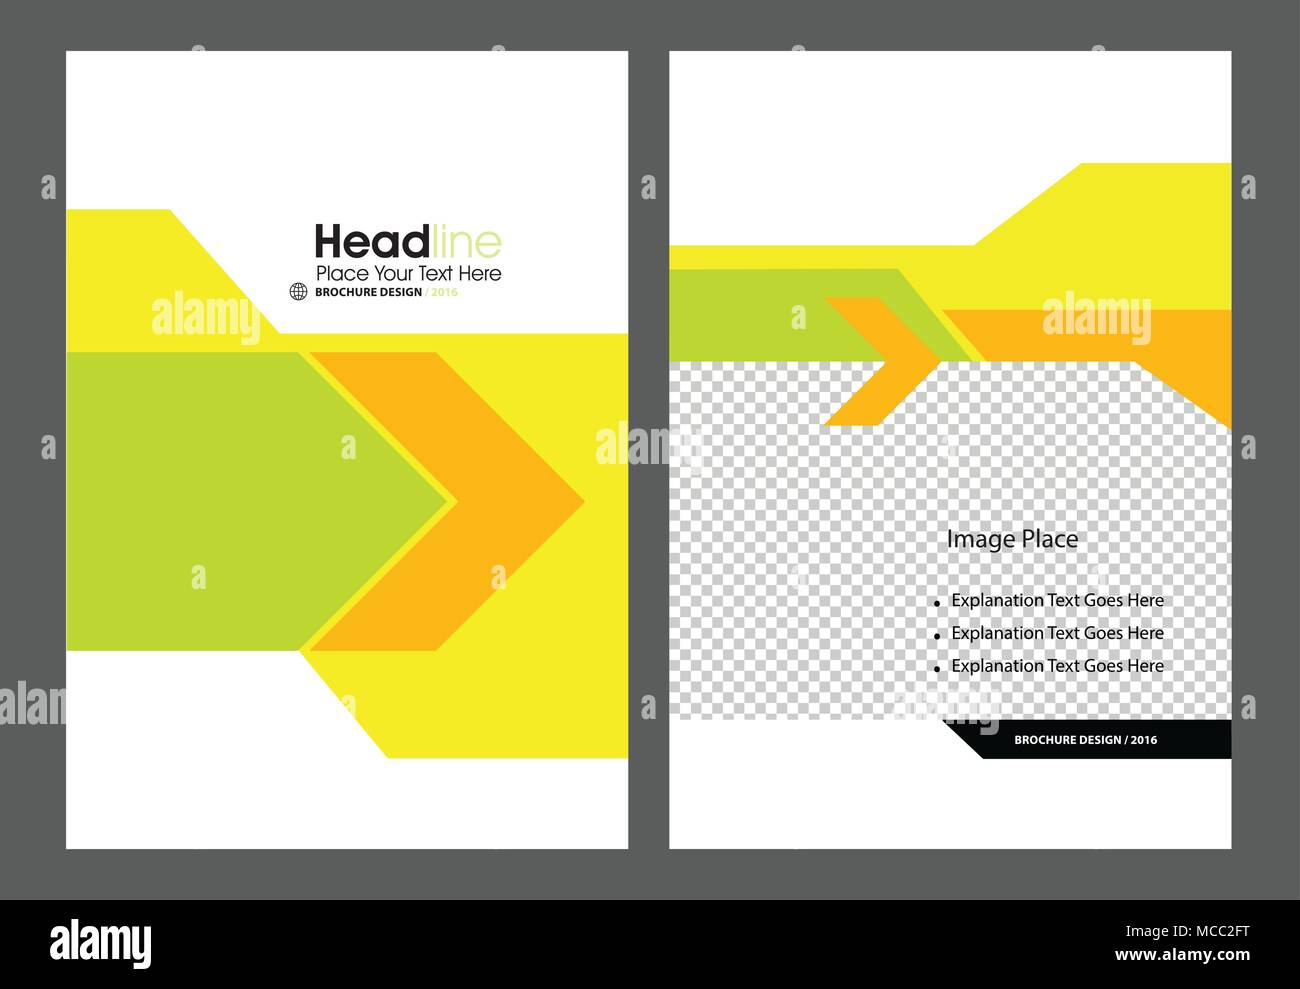 Professional Brochure Concept Template for Business Purpose, Place Your Text and Logos  and Ready To GO For Print. - Stock Image